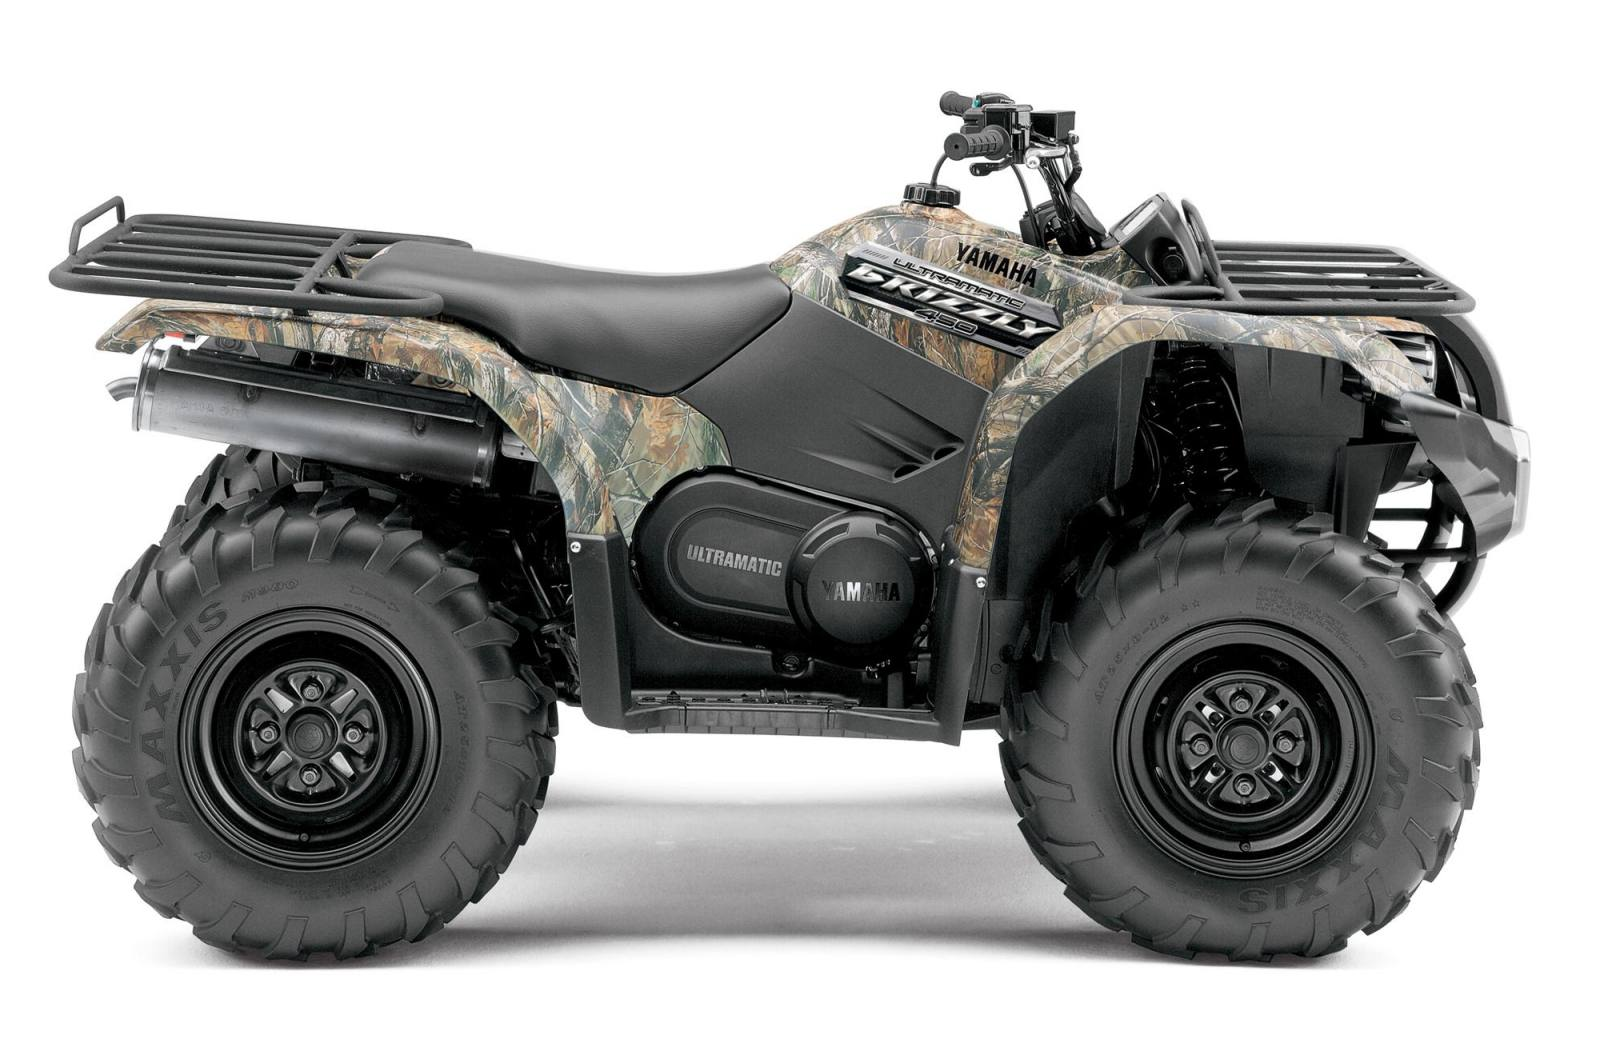 Yamaha Grizzly 450 >> 2013 Yamaha Grizzly 450 Auto 4x4 Realtree Ap Hd Camo For Sale In